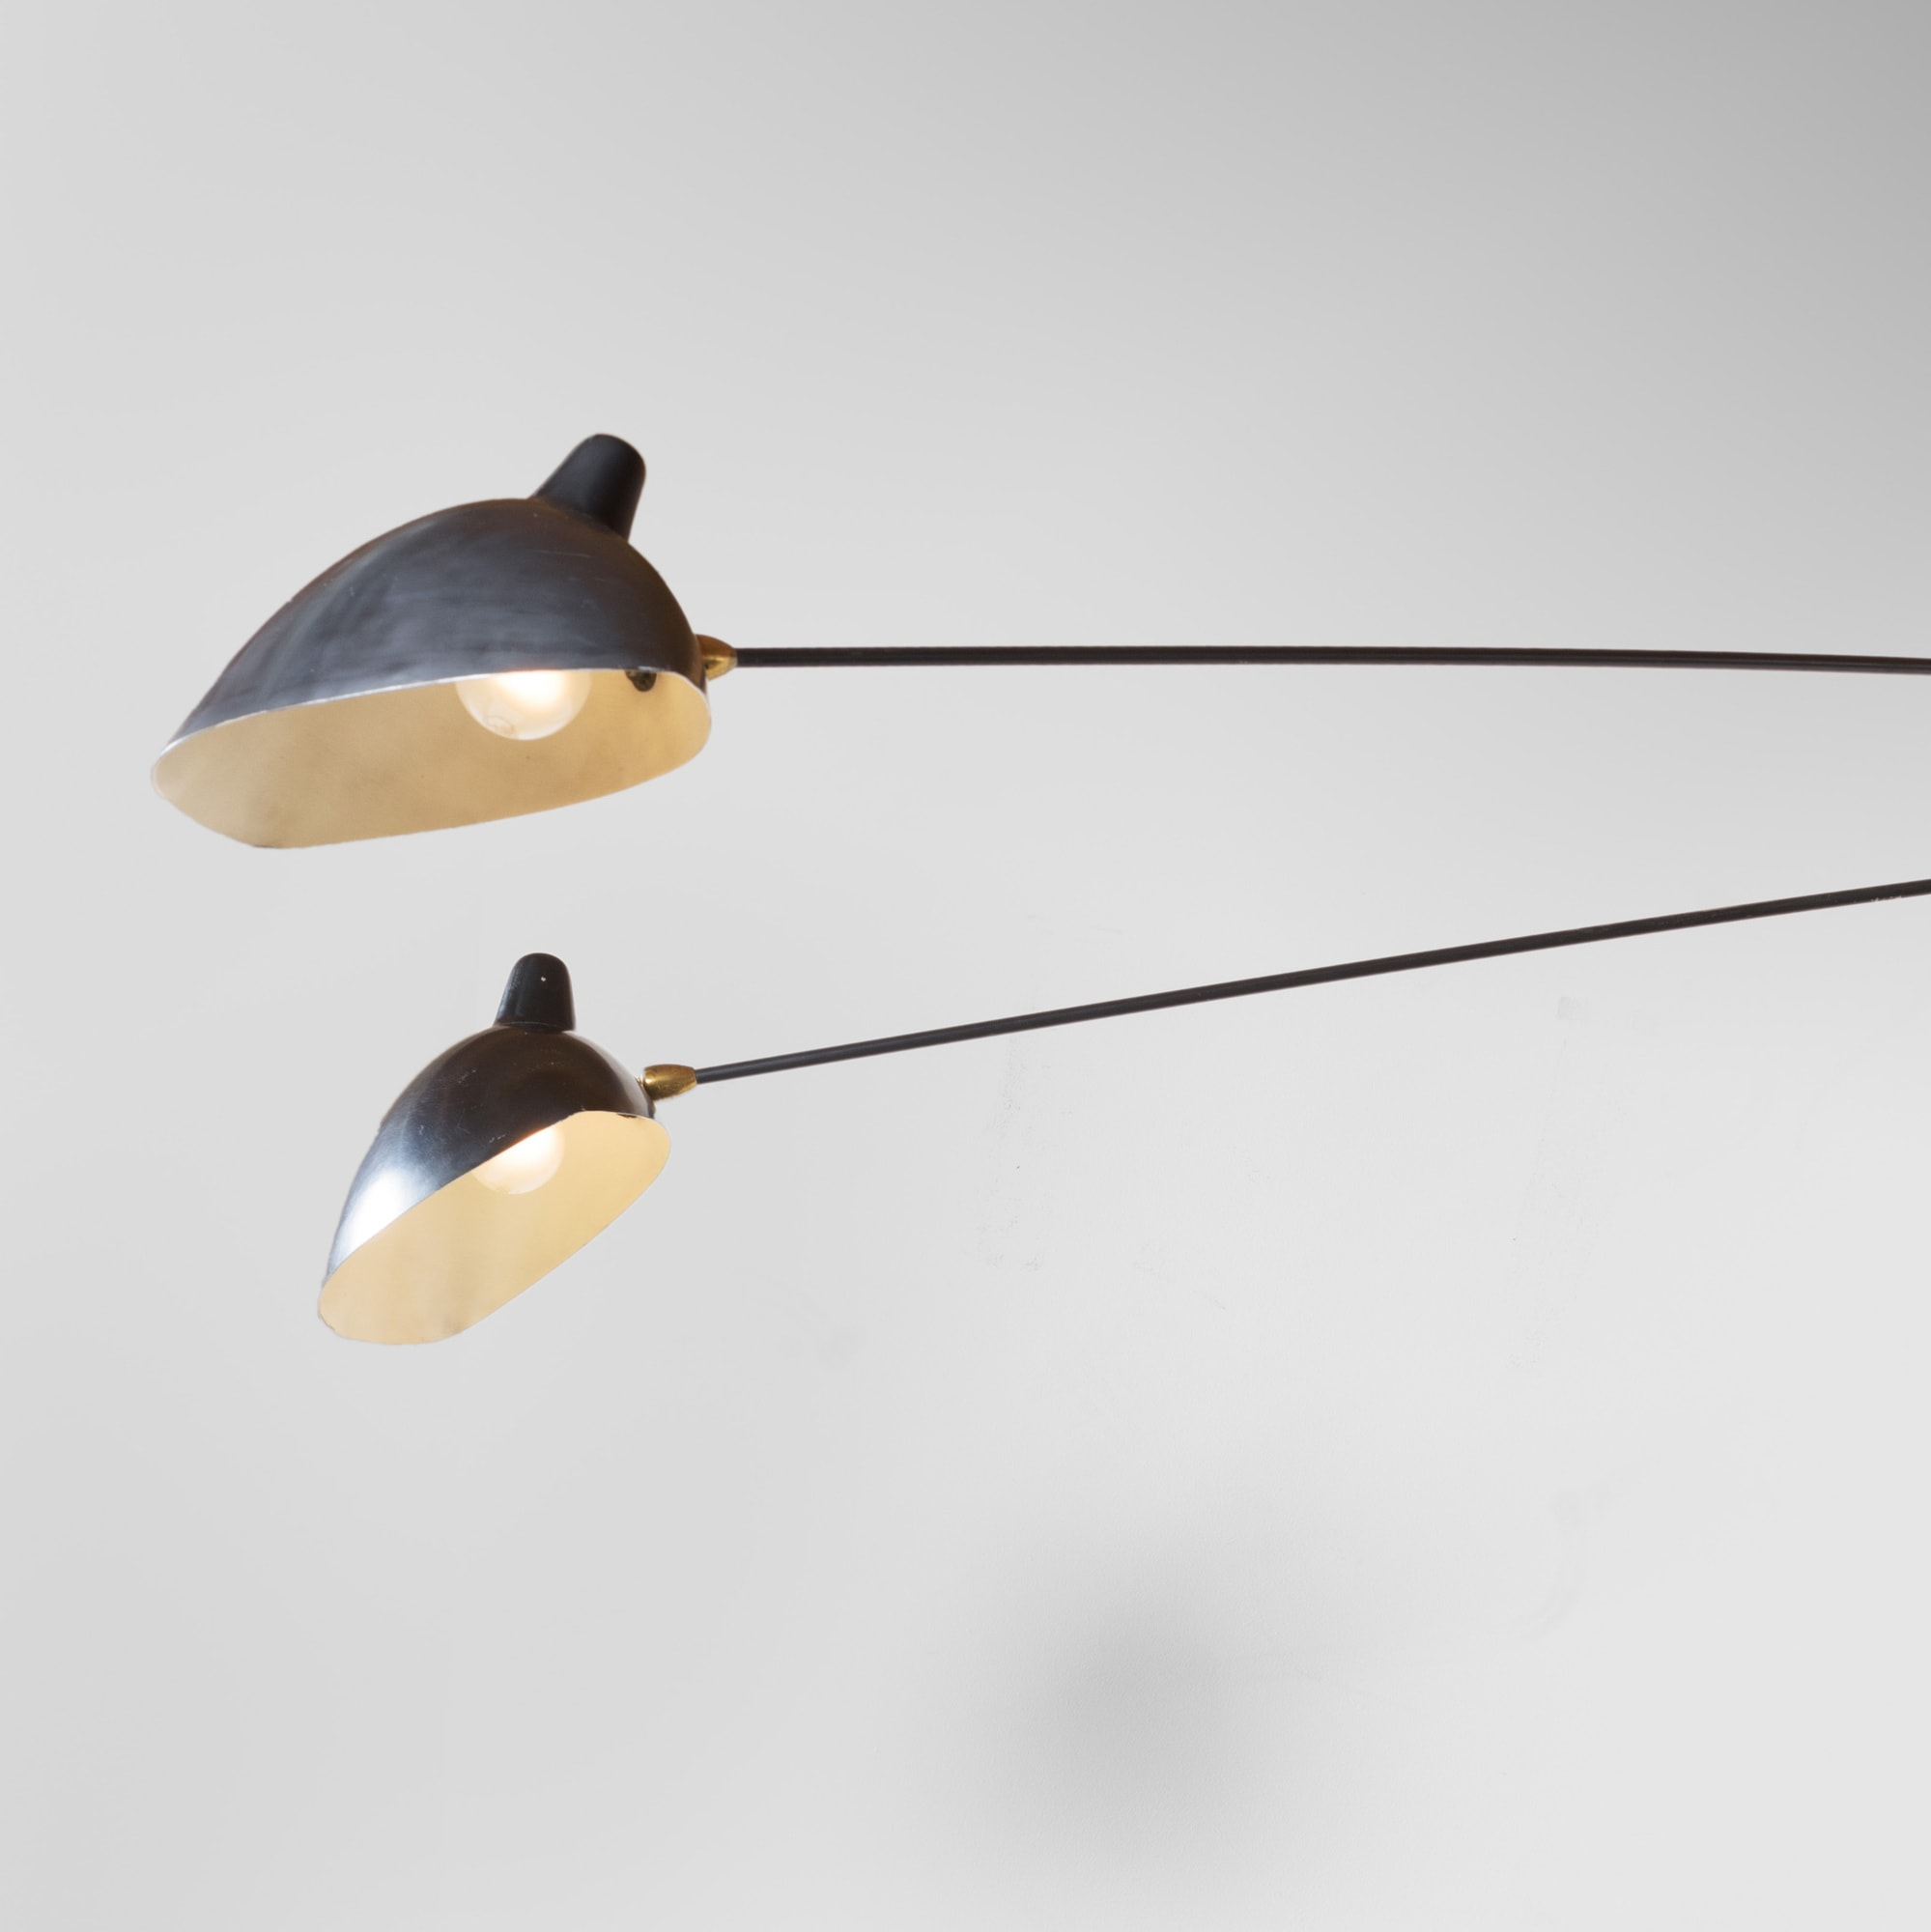 Rare and important wall-light with three arms bent, vue 02